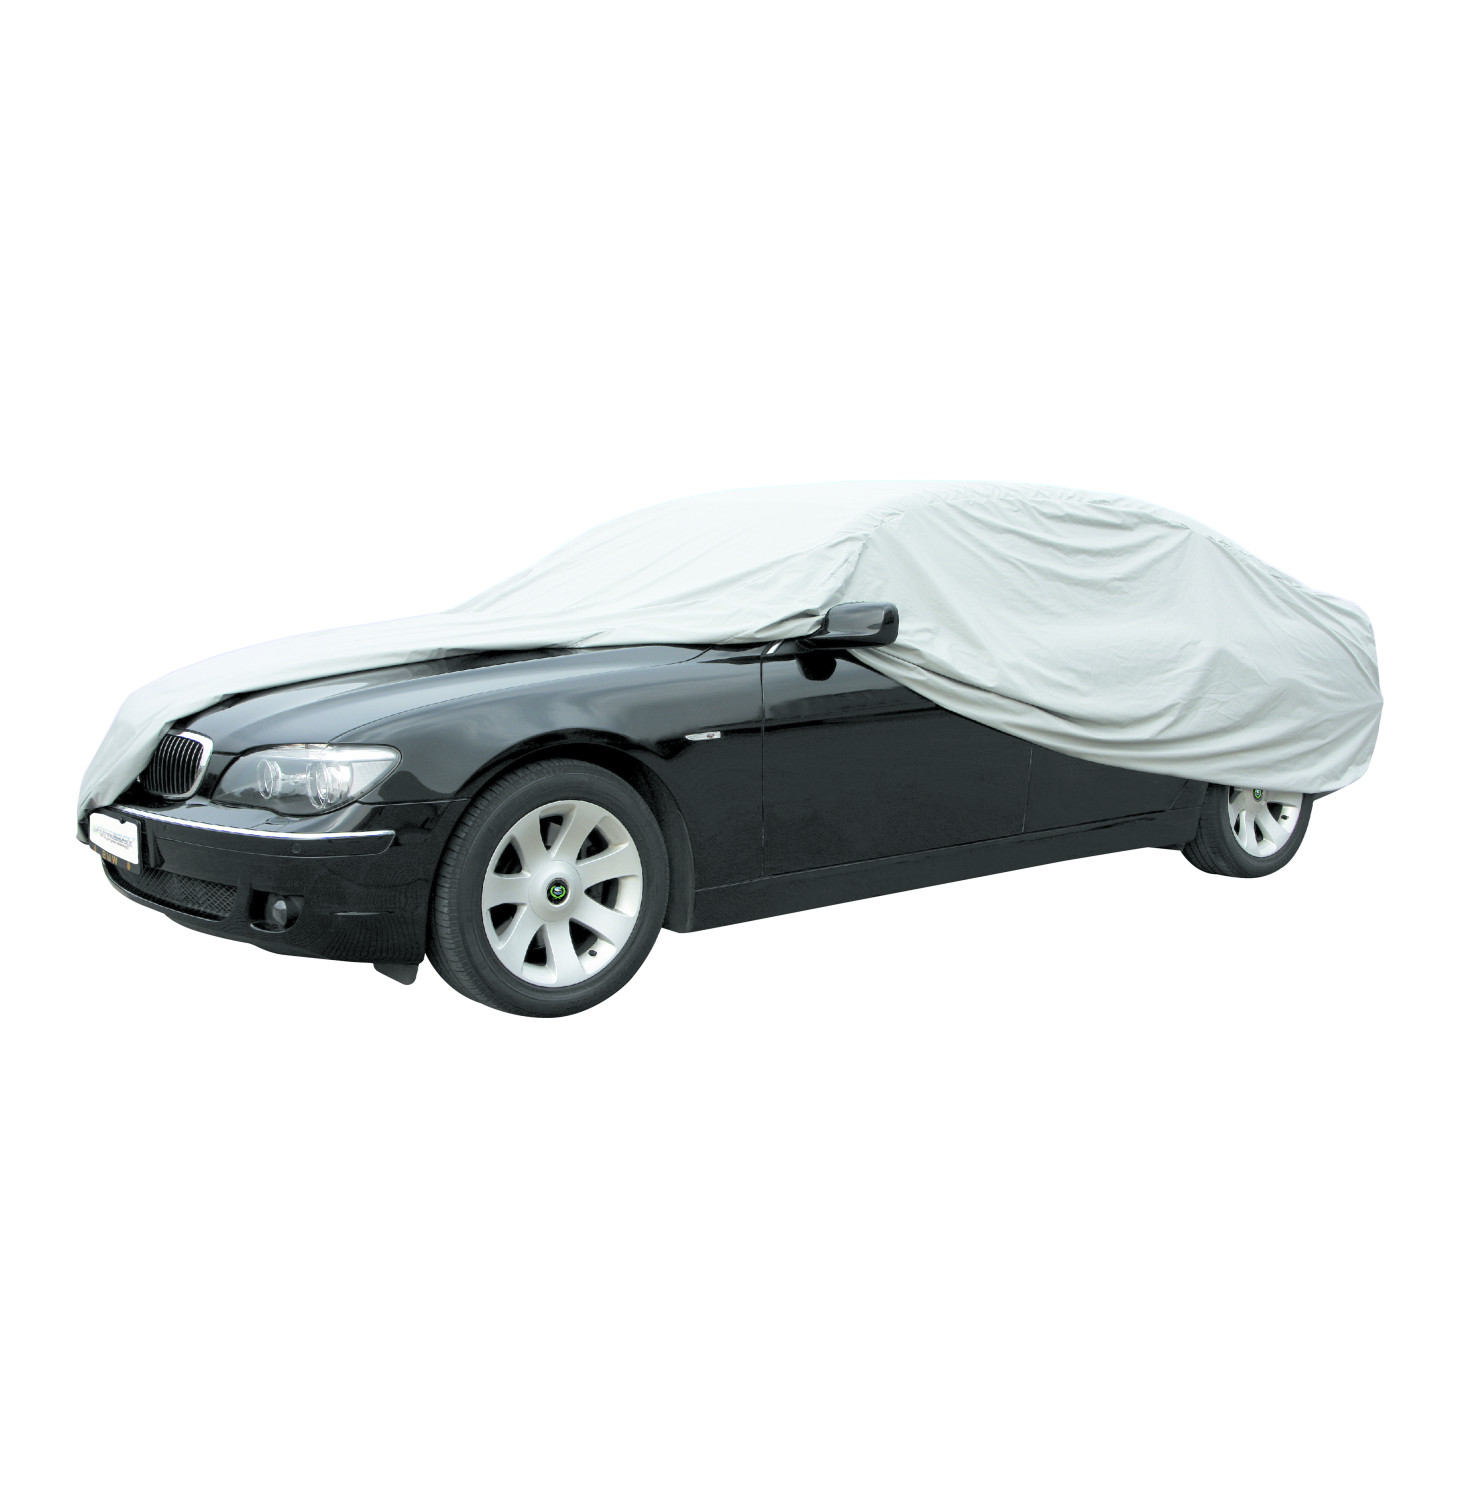 Motoquip Waterproof Car Cover - Small